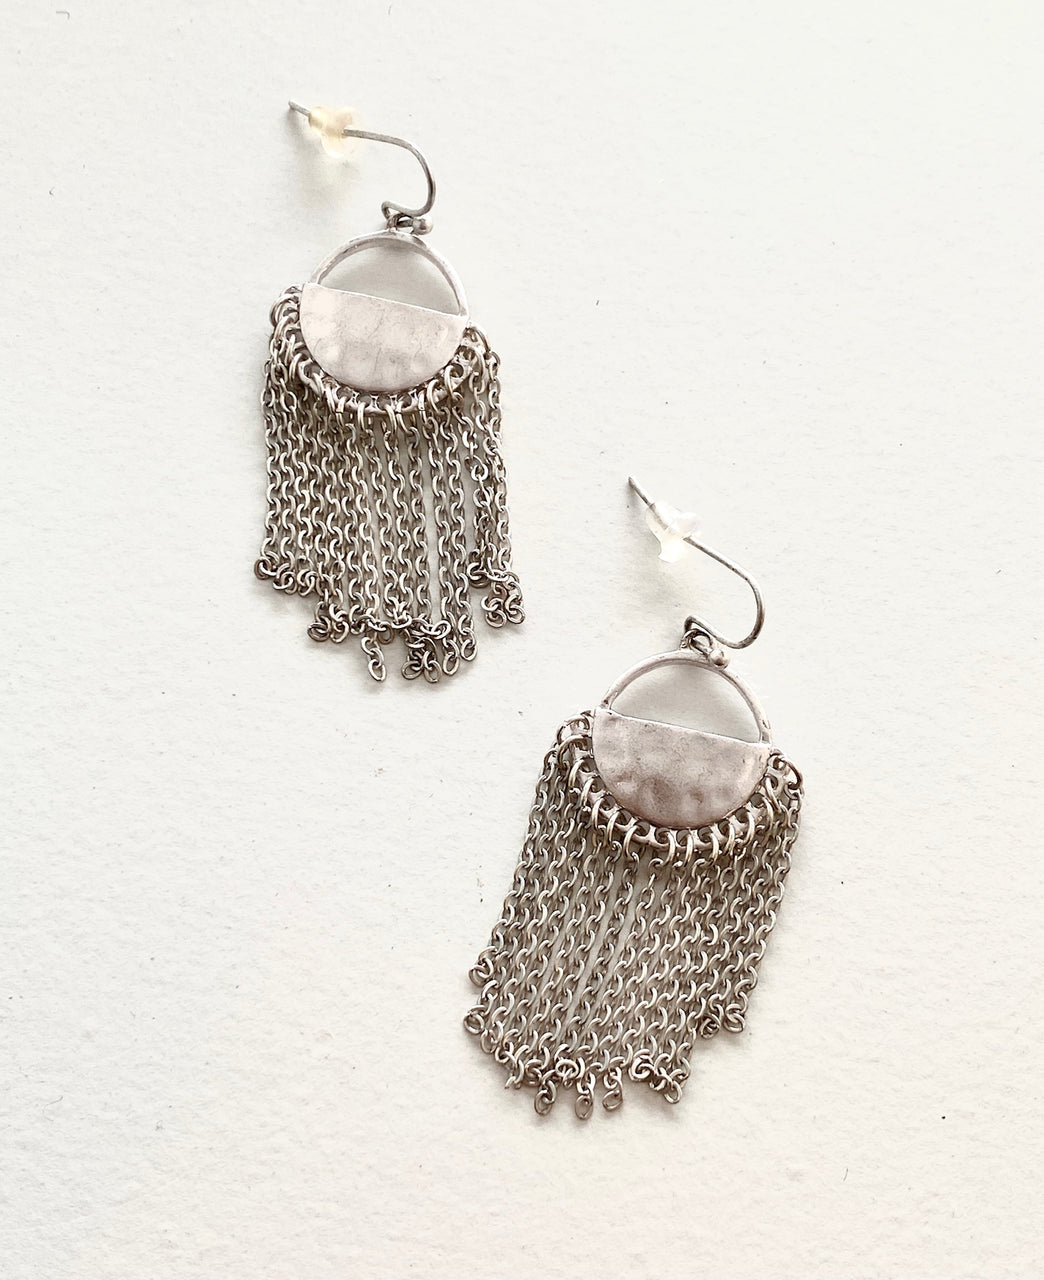 SILVER MOON AND CHAIN EARRING